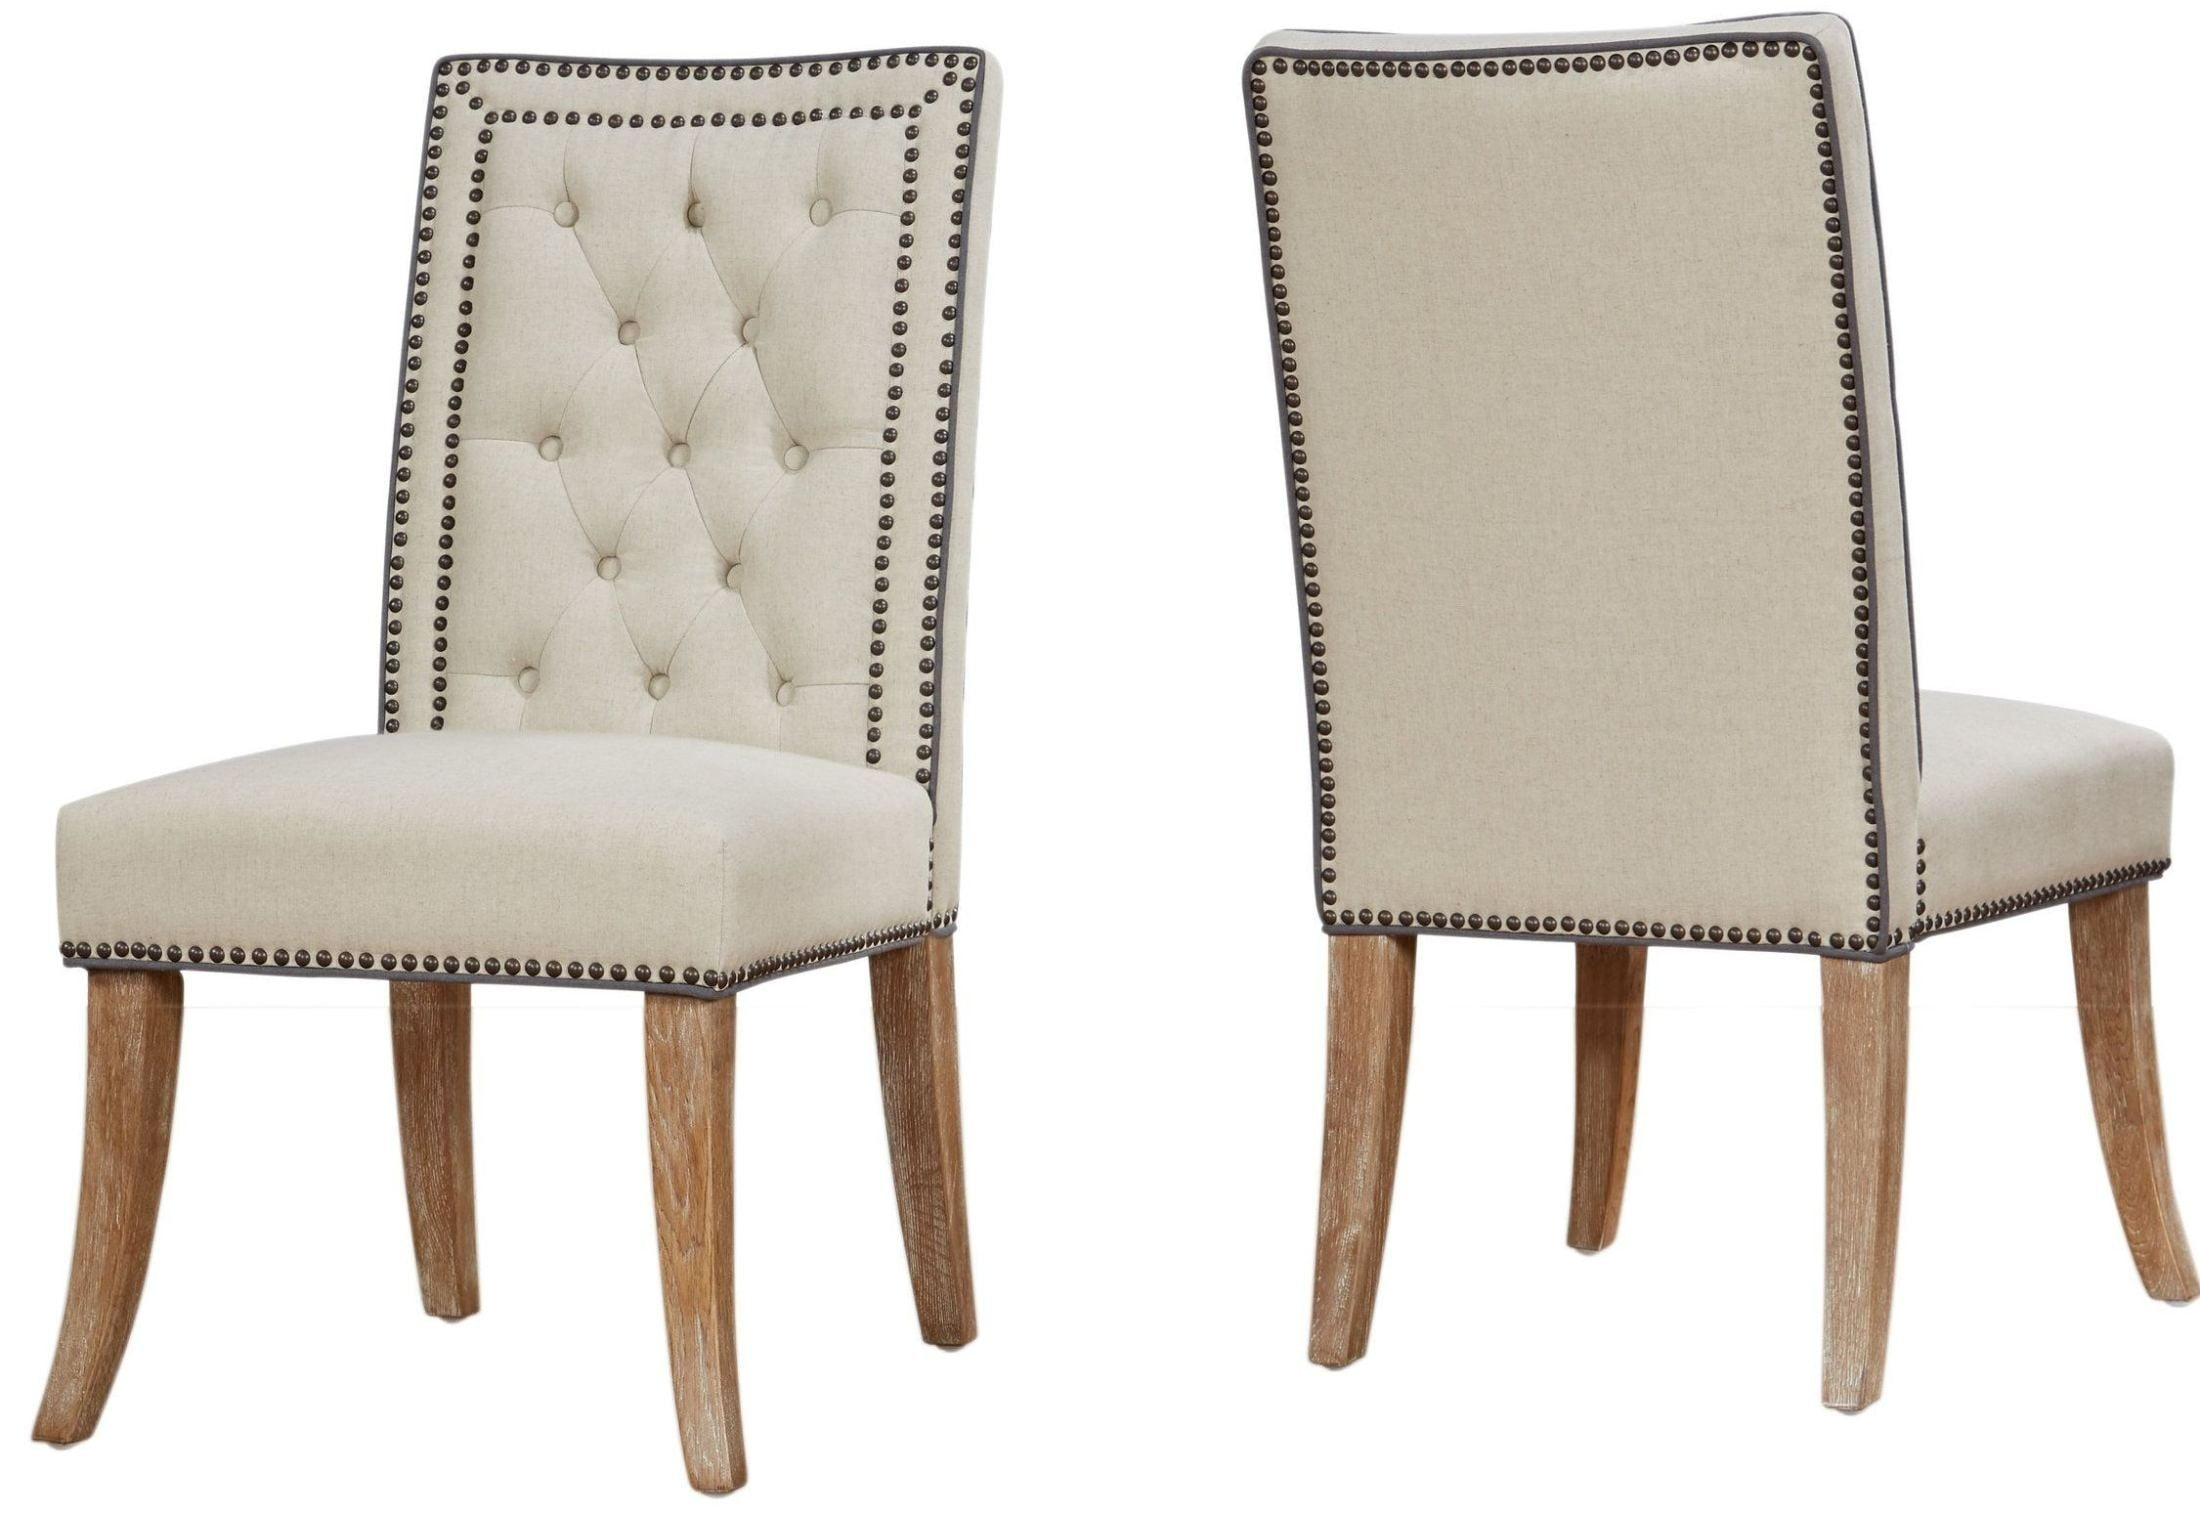 beige dining chairs swivel rocking for patio garrett linen chair set of 2 from tov